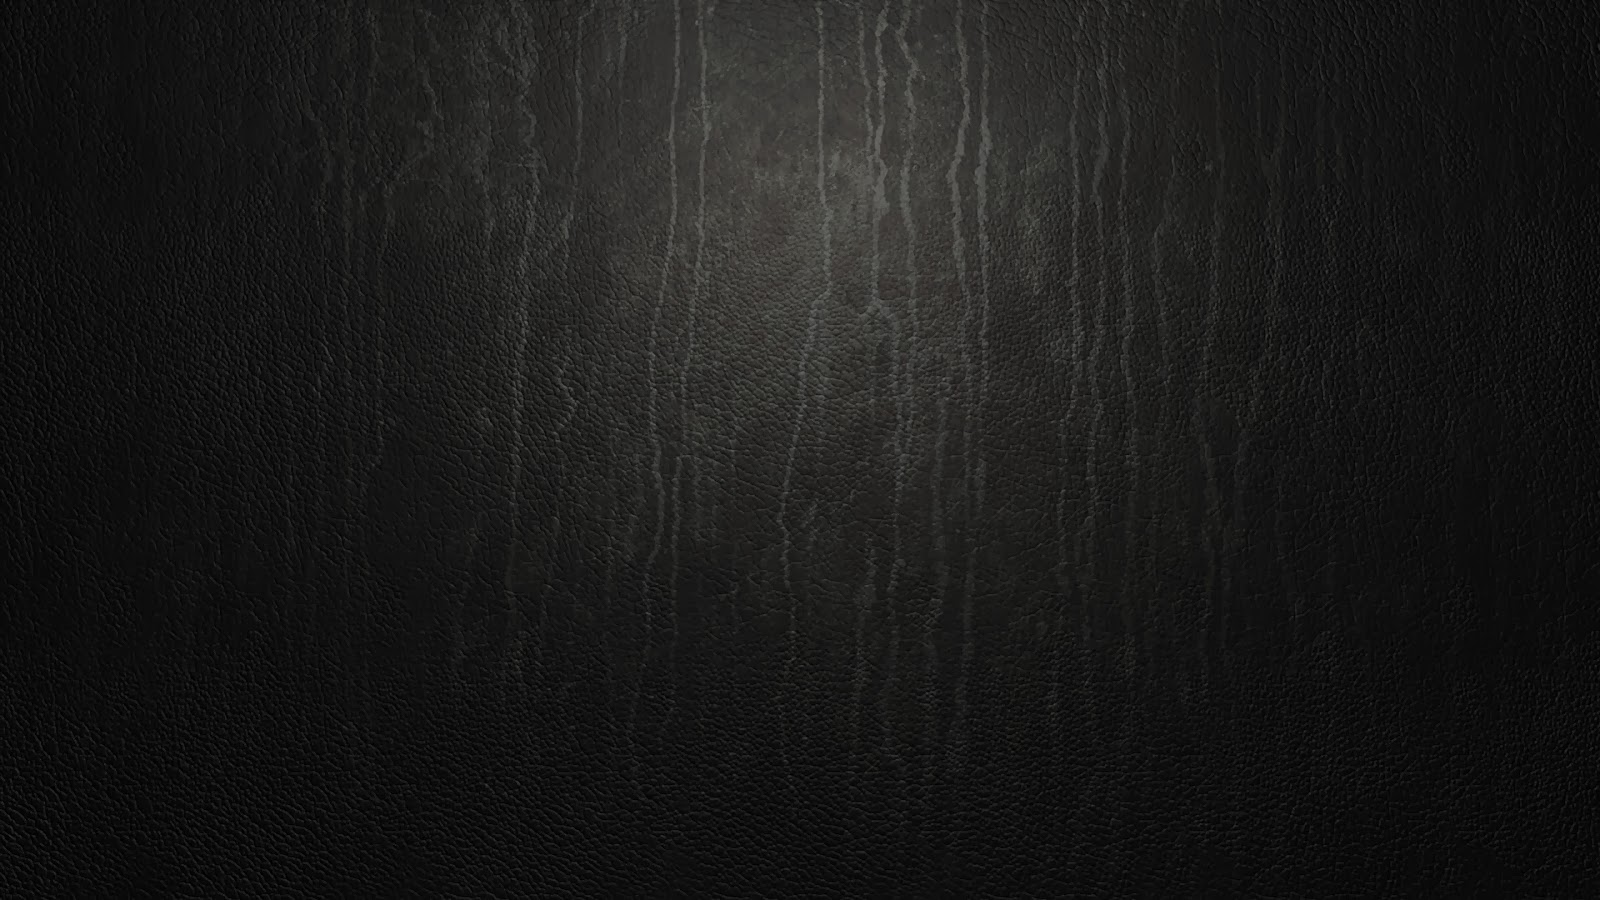 abstract black wallpaper 1920x1080 6